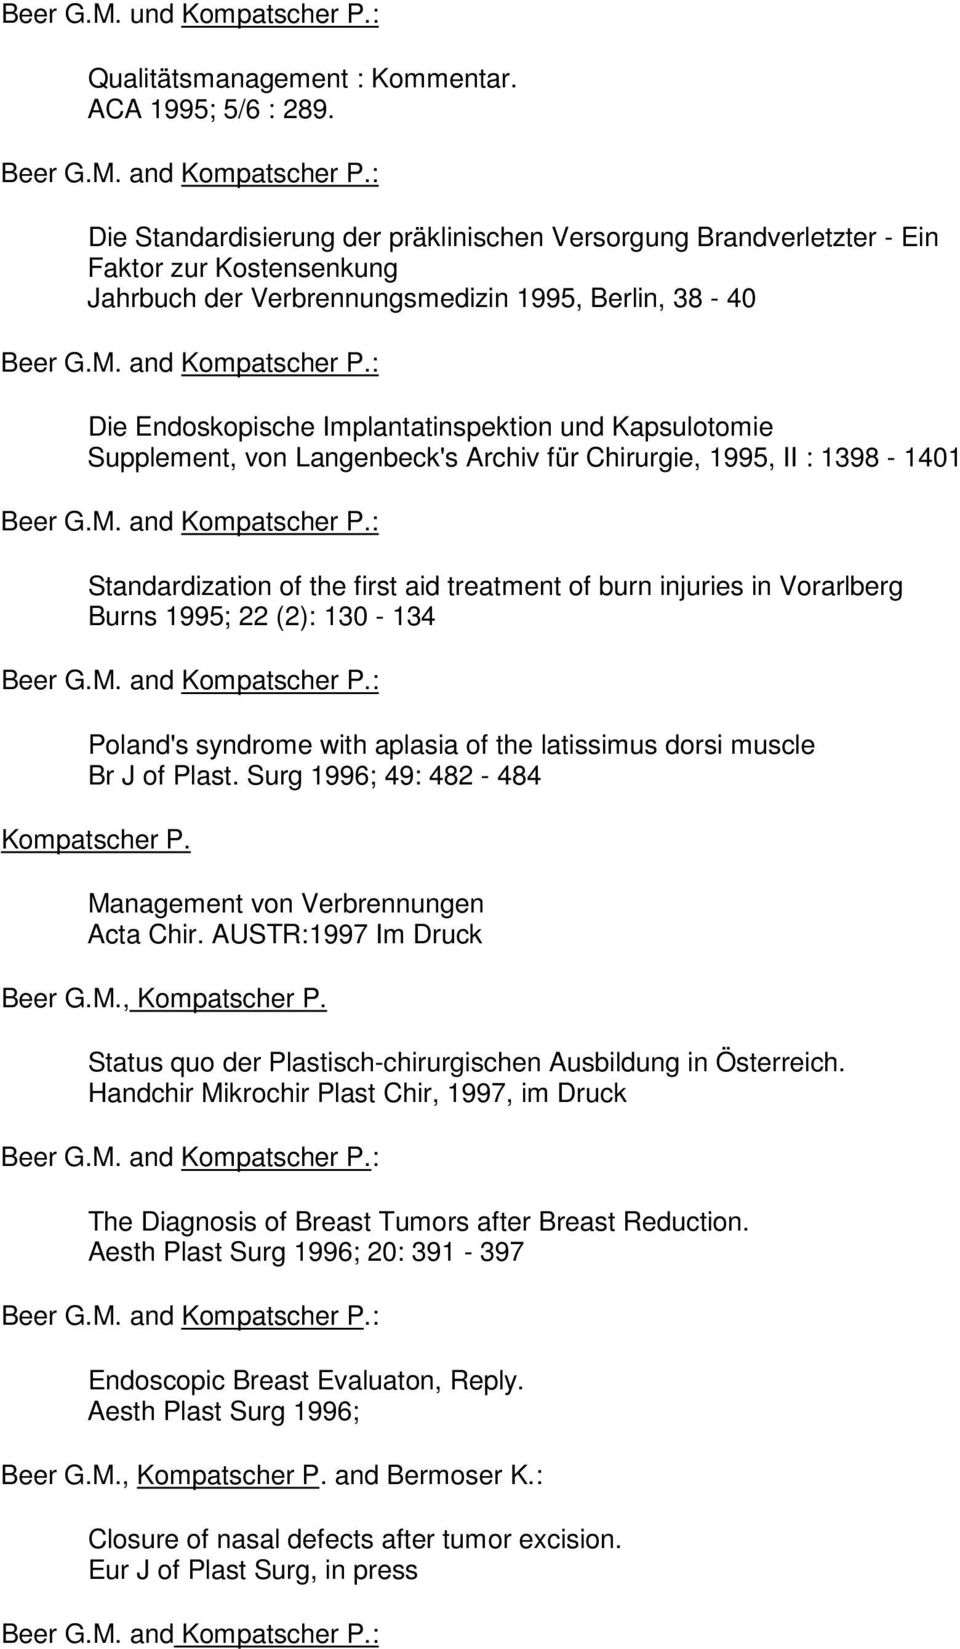 Kapsulotomie Supplement, von Langenbeck's Archiv für Chirurgie, 1995, II : 1398-1401 Standardization of the first aid treatment of burn injuries in Vorarlberg Burns 1995; 22 (2): 130-134 Poland's